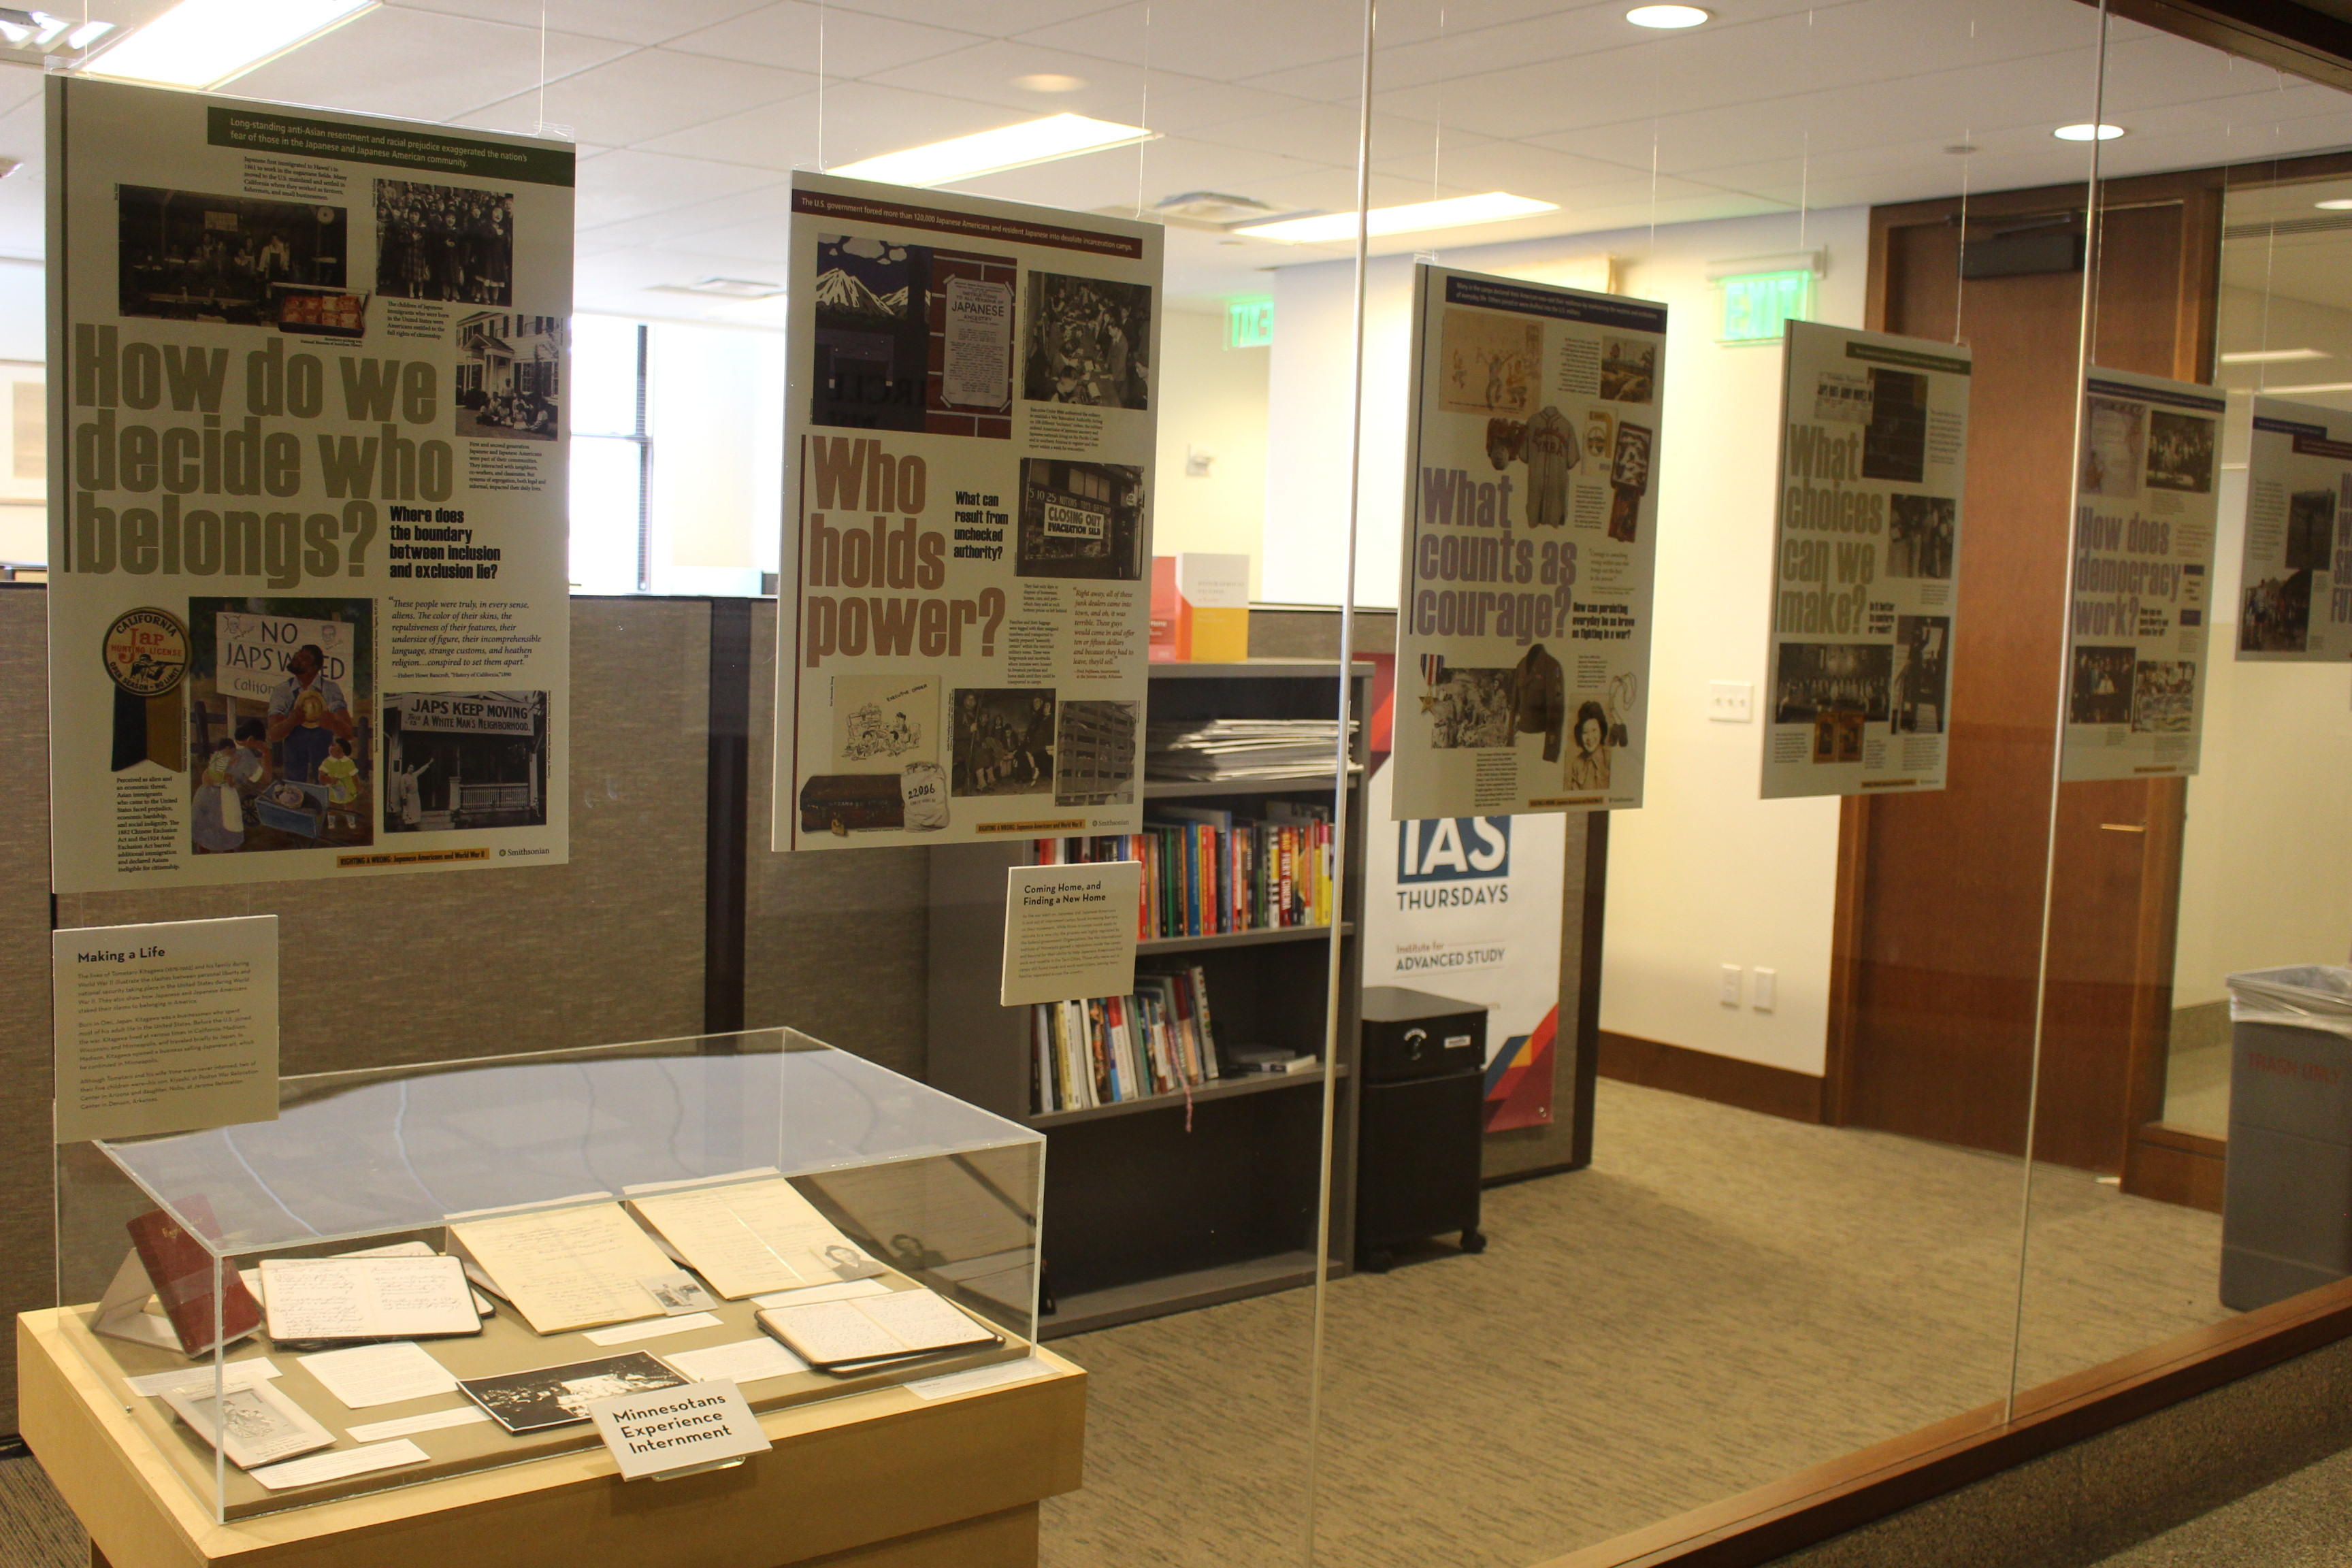 Righting a Wrong poster exhibit image with supplemental archival materials.